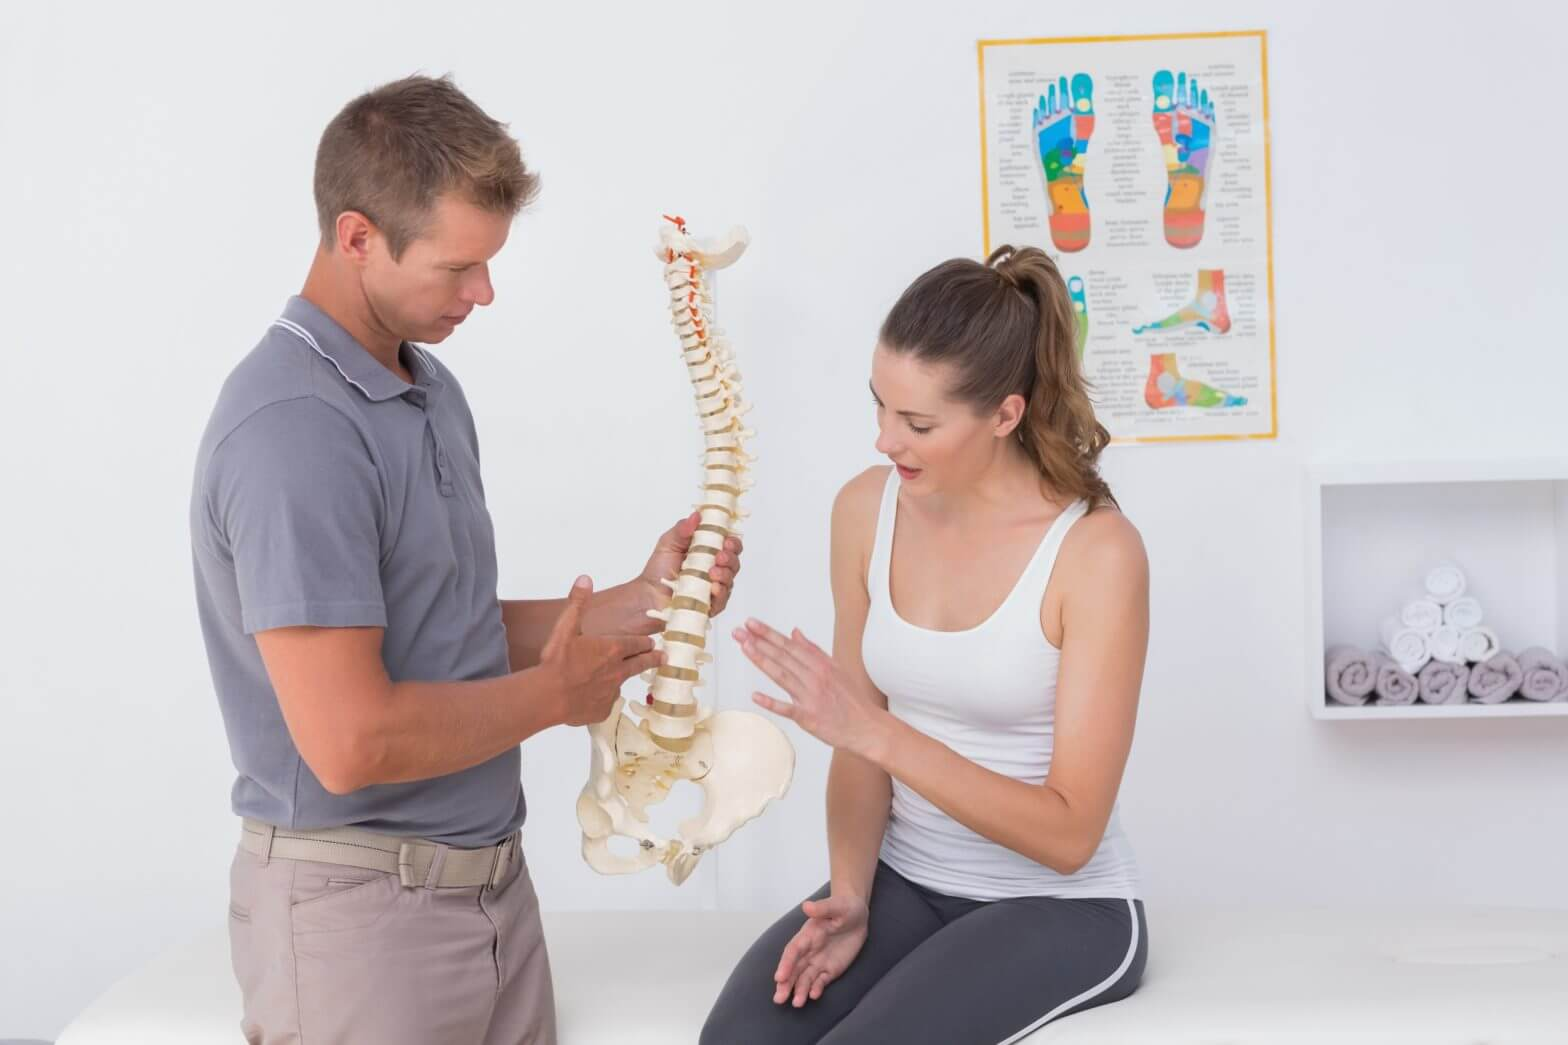 Herniated disc may be causing your back pain